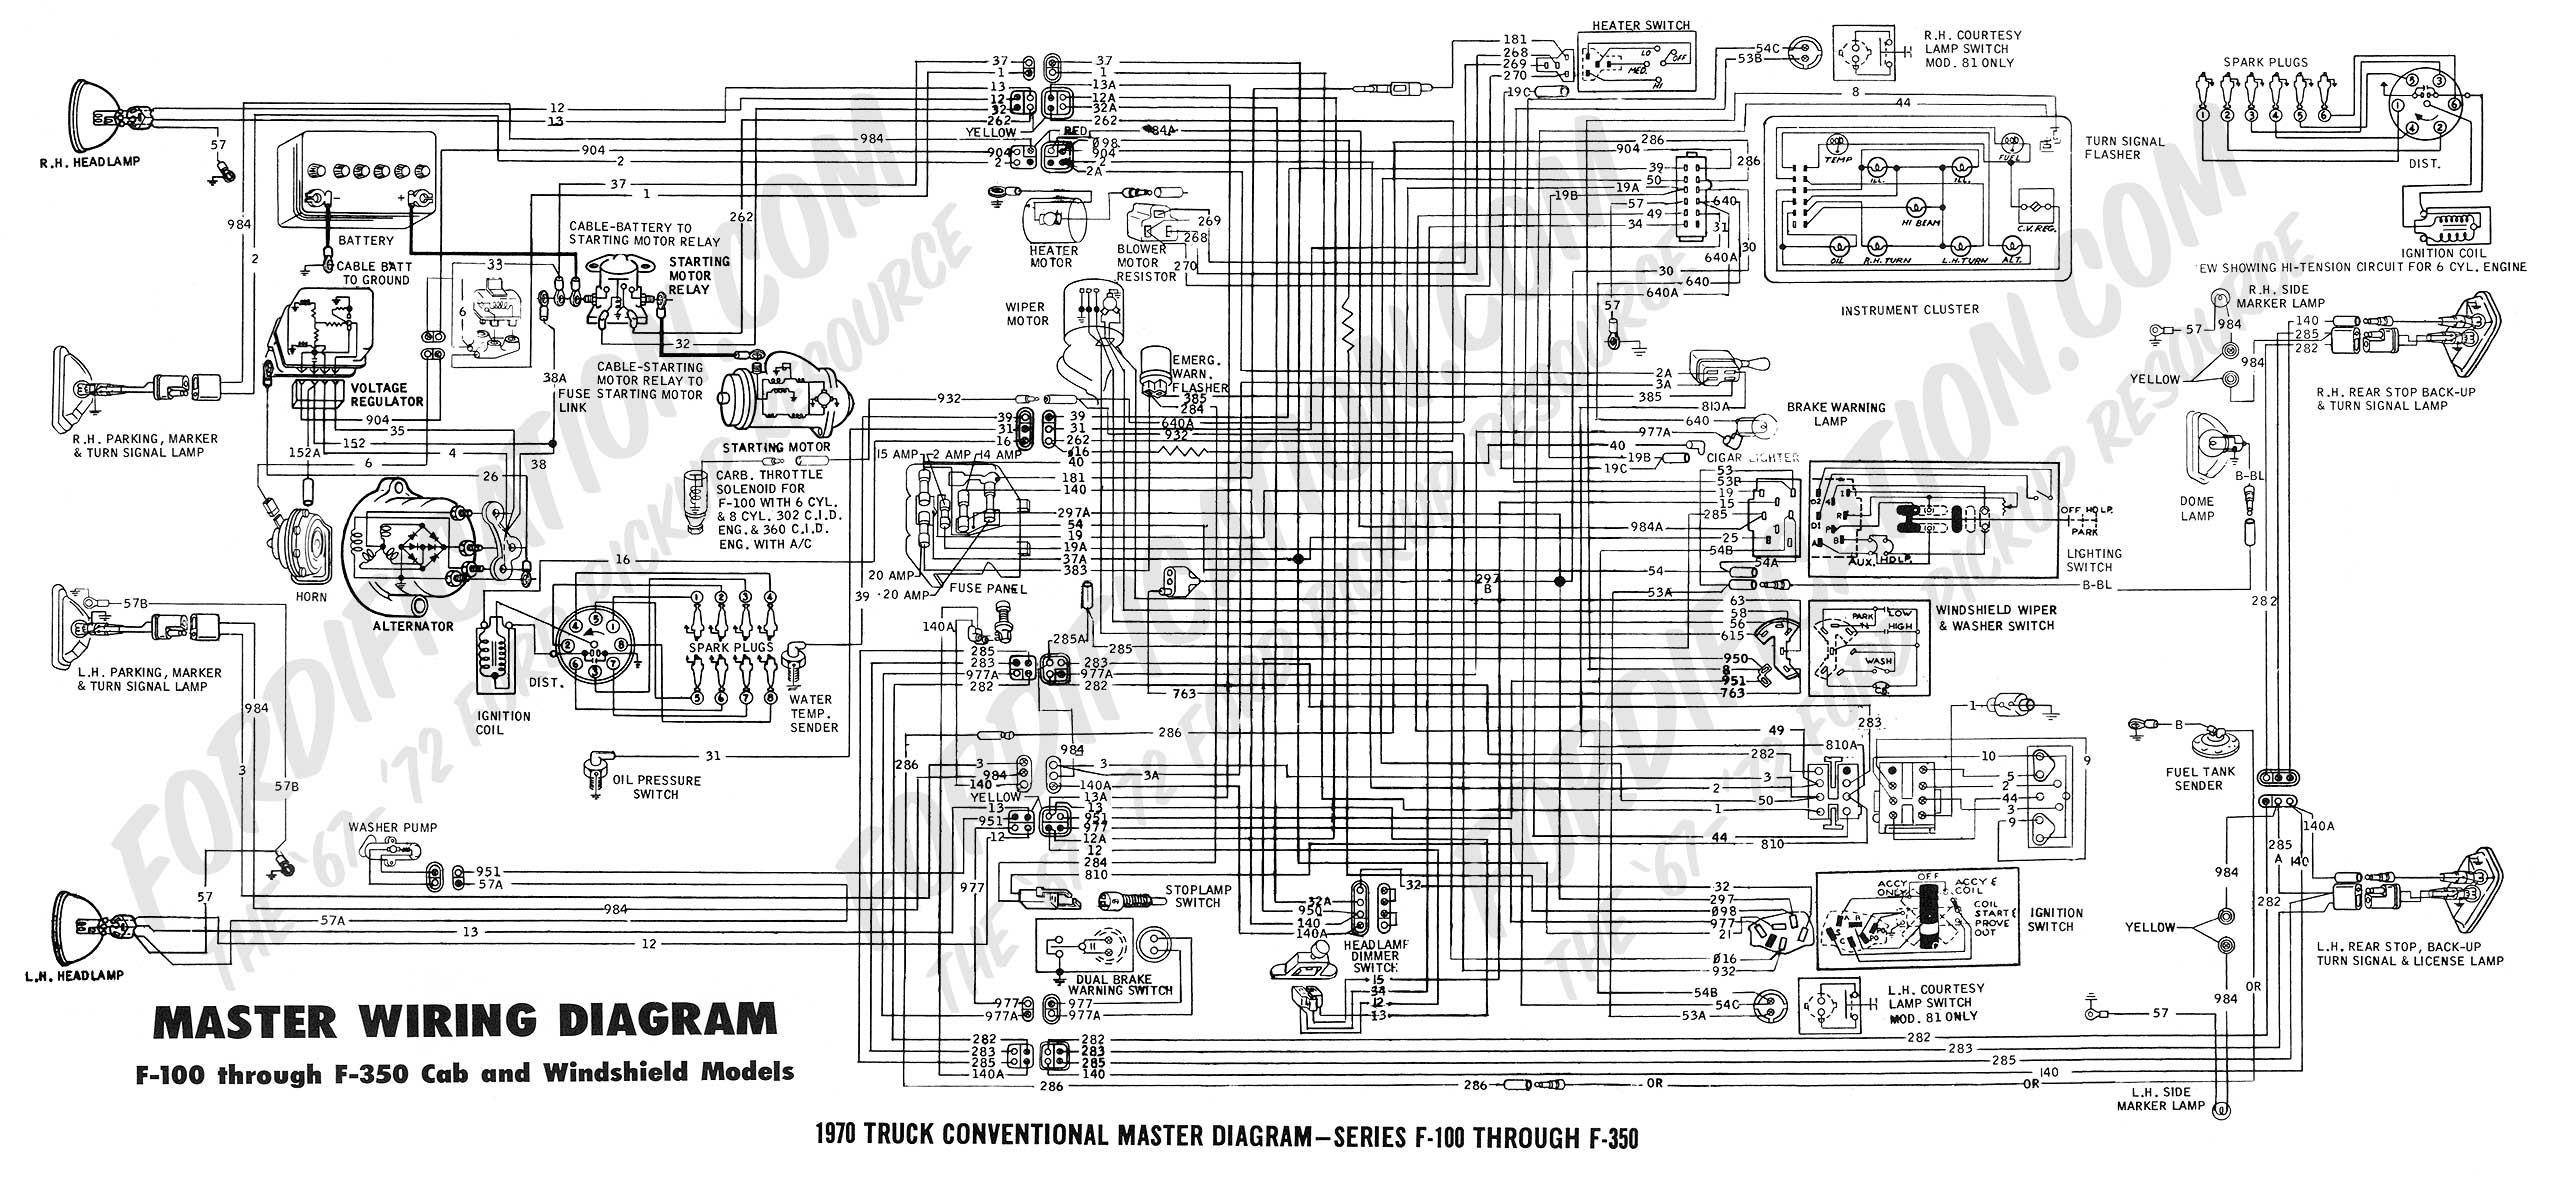 wiring diagram 70_master wiring diagram for 1971 ford f100 pickup readingrat net 1971 ford f250 wiring diagram at bayanpartner.co